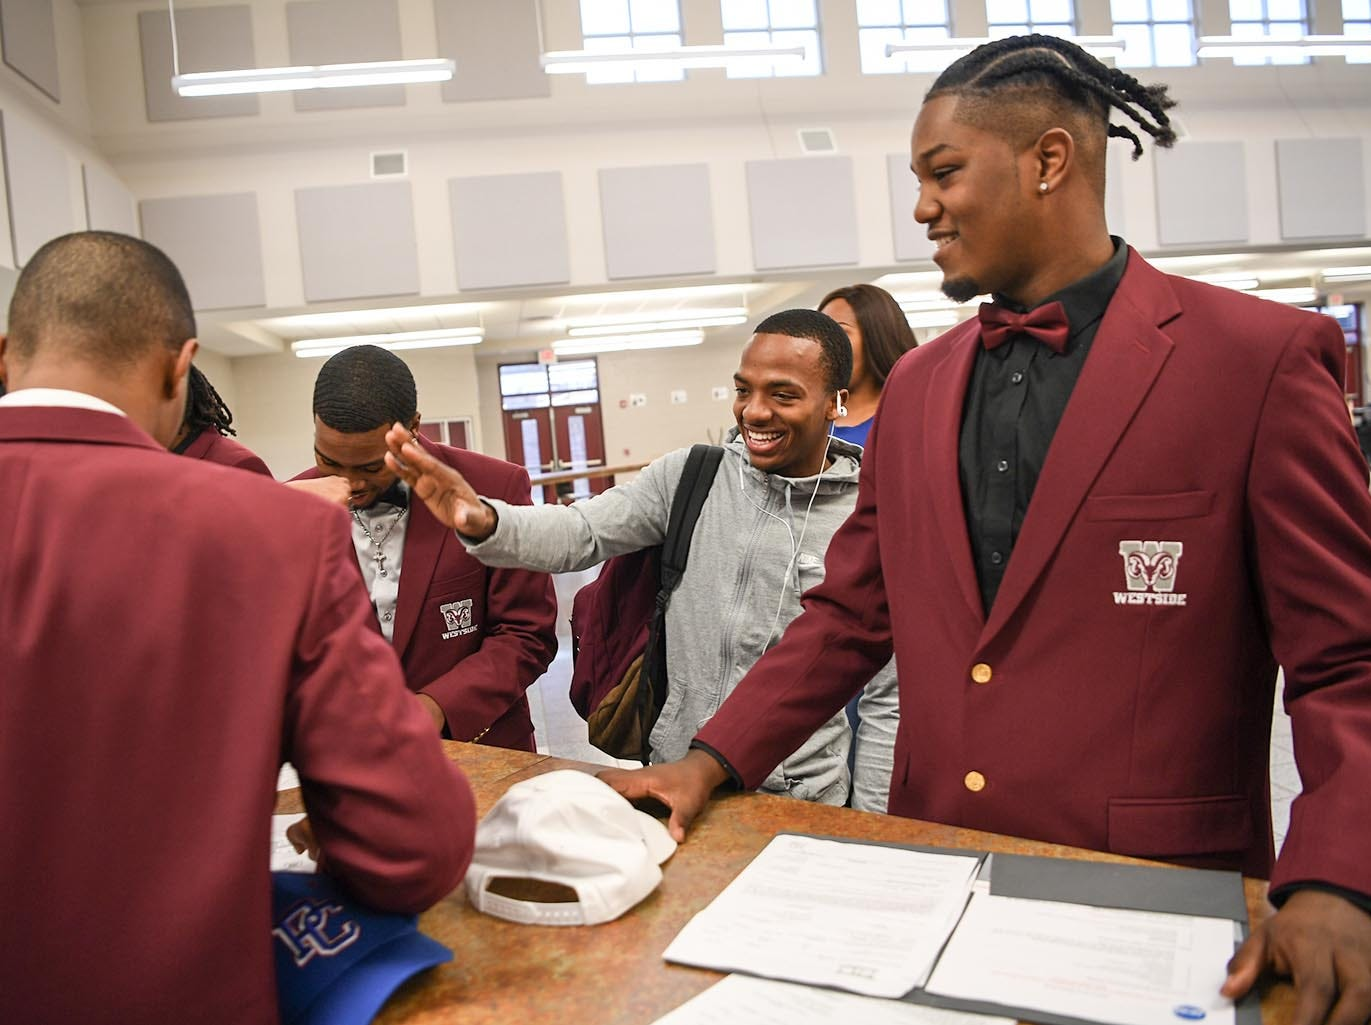 Traye Carson, middle, congratulates former football teammates, including Florida Intstitute of Technology signee Ty Ty Danzy, right, one of seven athletes from Westside High School football to sign a National Letter of Intent at Westside High School in Anderson Wednesday. Newberry College signees Zach Howard, Devante Gambrell, Wingate University signees Nasir Evans and K.D. Fant-Miles, Presbyterian College signees Paul Johnson and Tim Johnson, and Florida Intstitute of Technology signee Ty Ty Danzy.